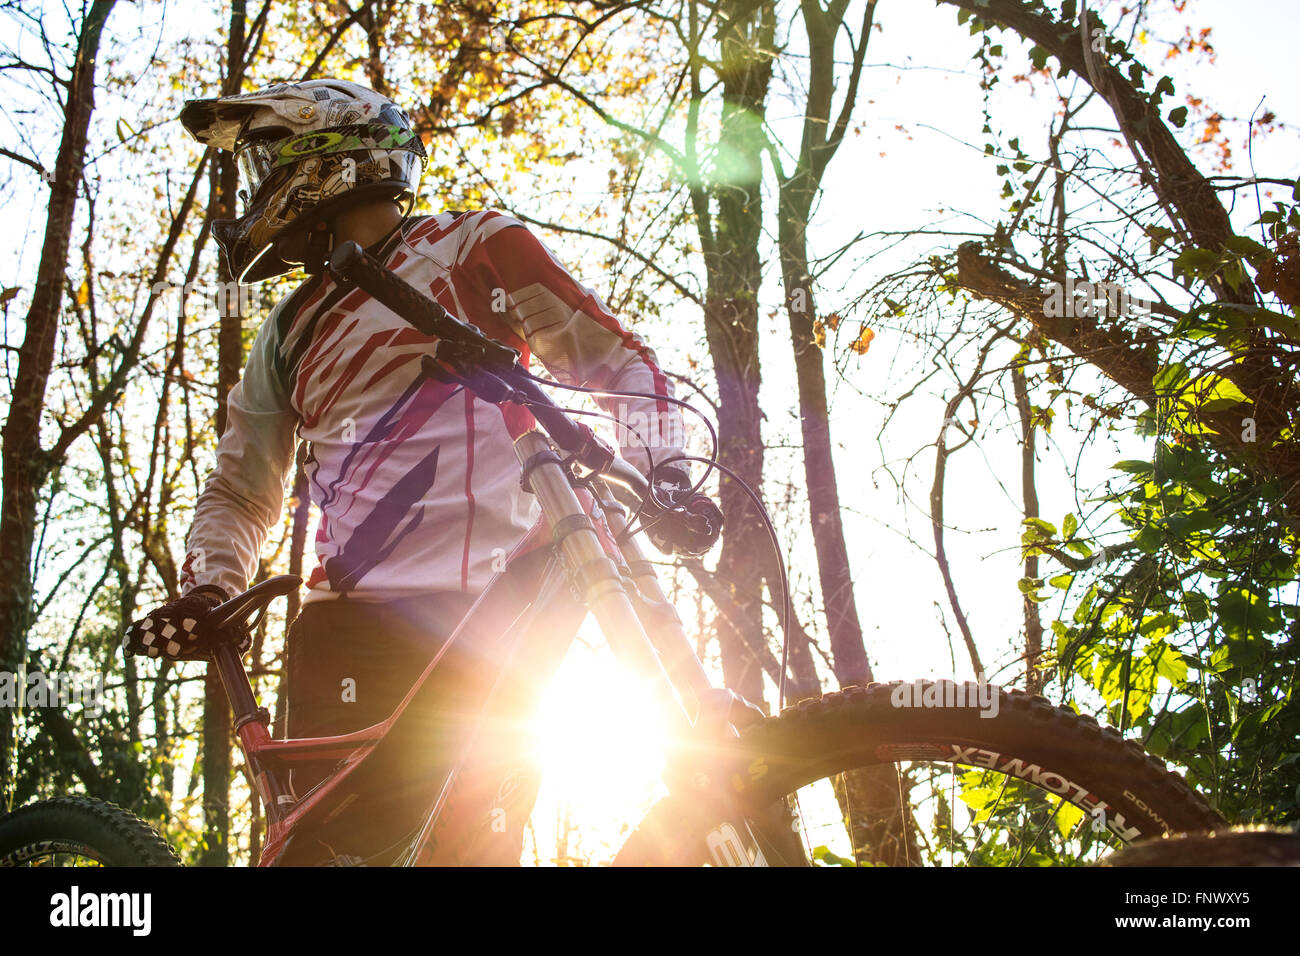 MTB boy. Italy, 2015. - Stock Image